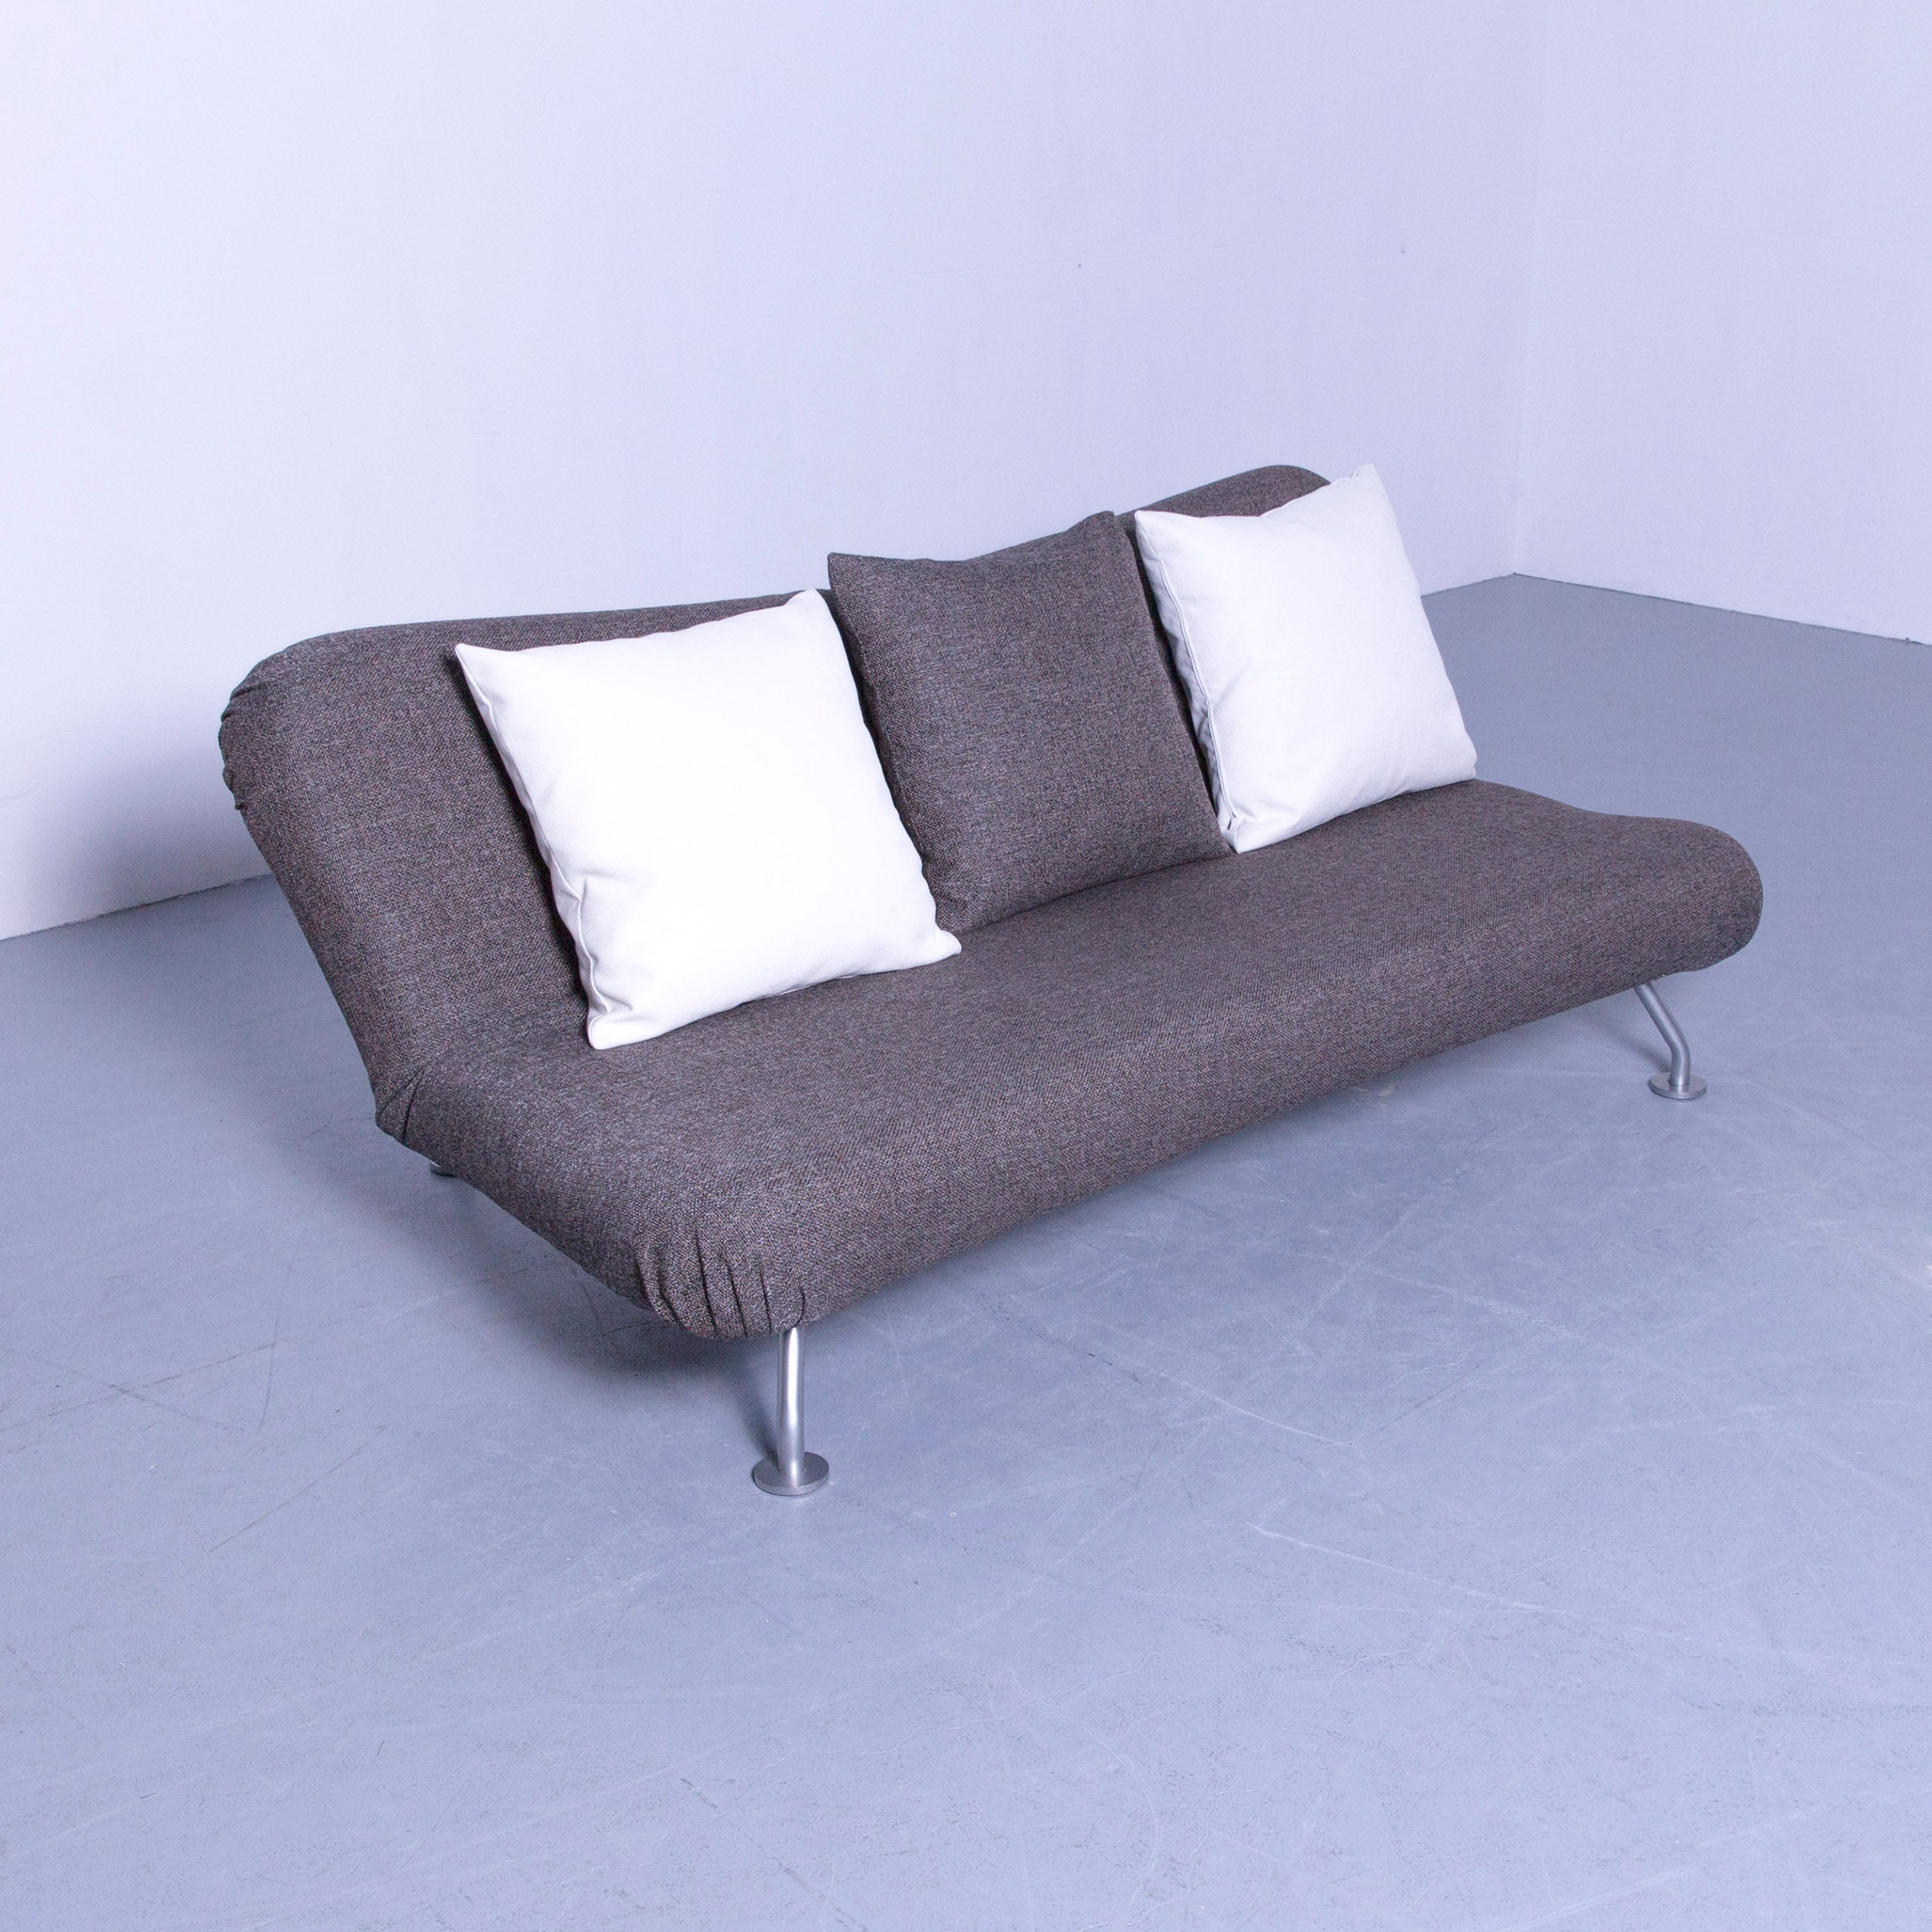 Sofa Funktion Brühl Sippold More Sofa Fabric Grey Three Seat Couch Sleeping Function